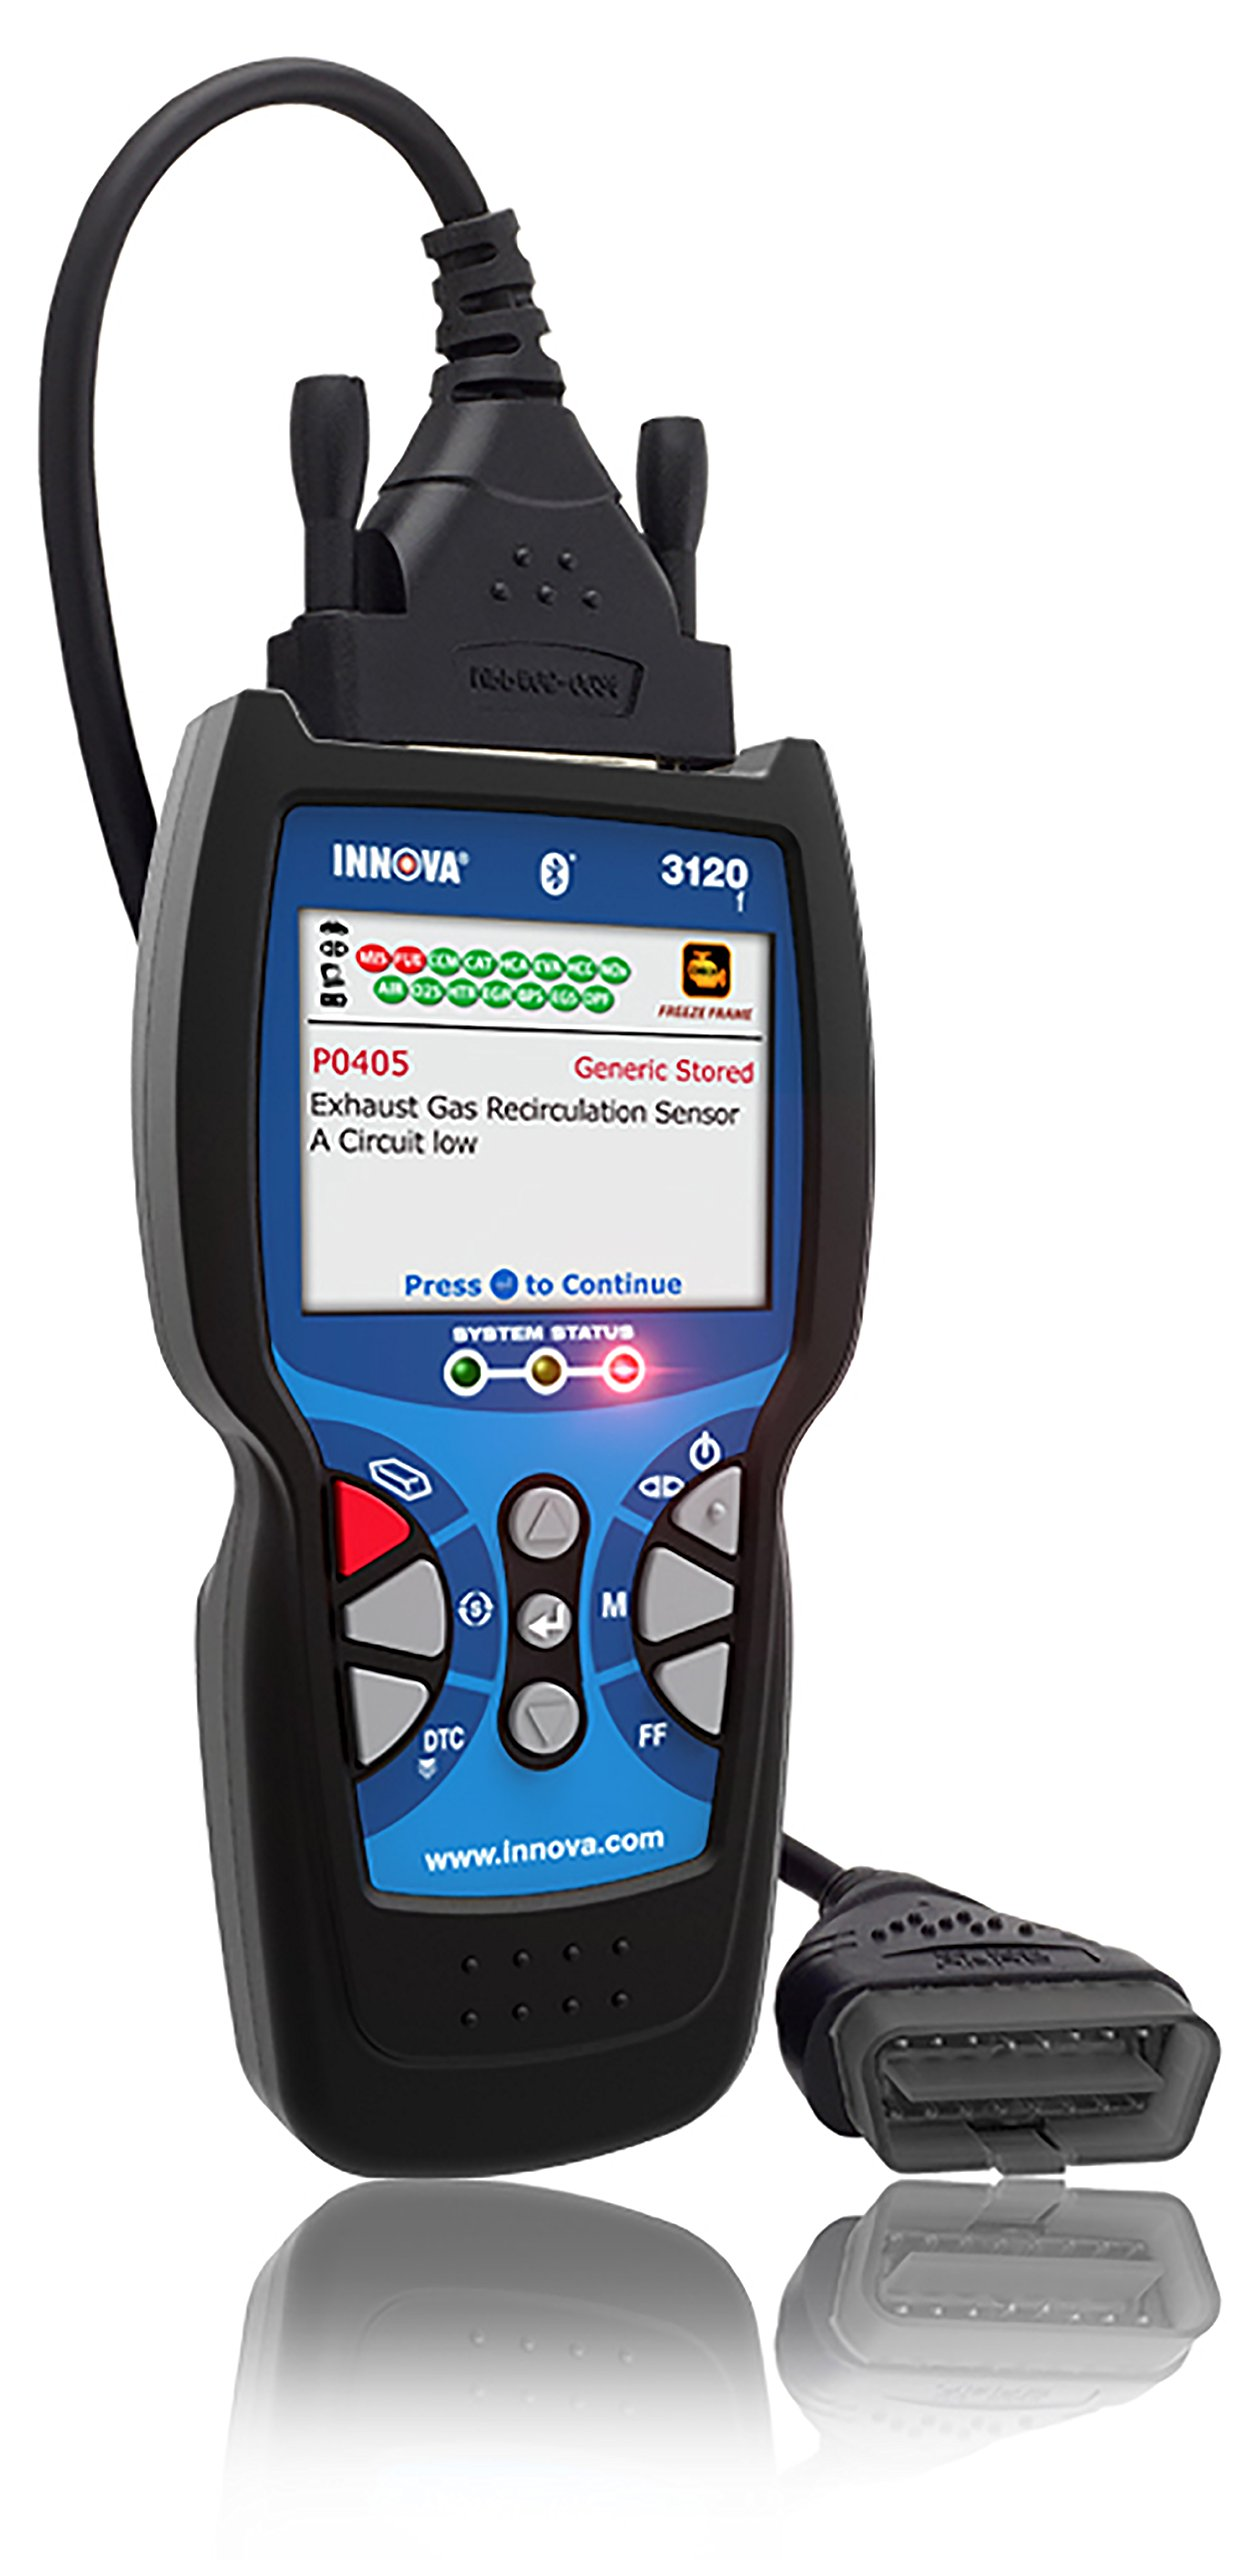 Innova 3120f Code Reader / Scan Tool with ABS and Bluetooth for OBD2 Vehicles with OBD1 Coverage by Innova (Image #1)